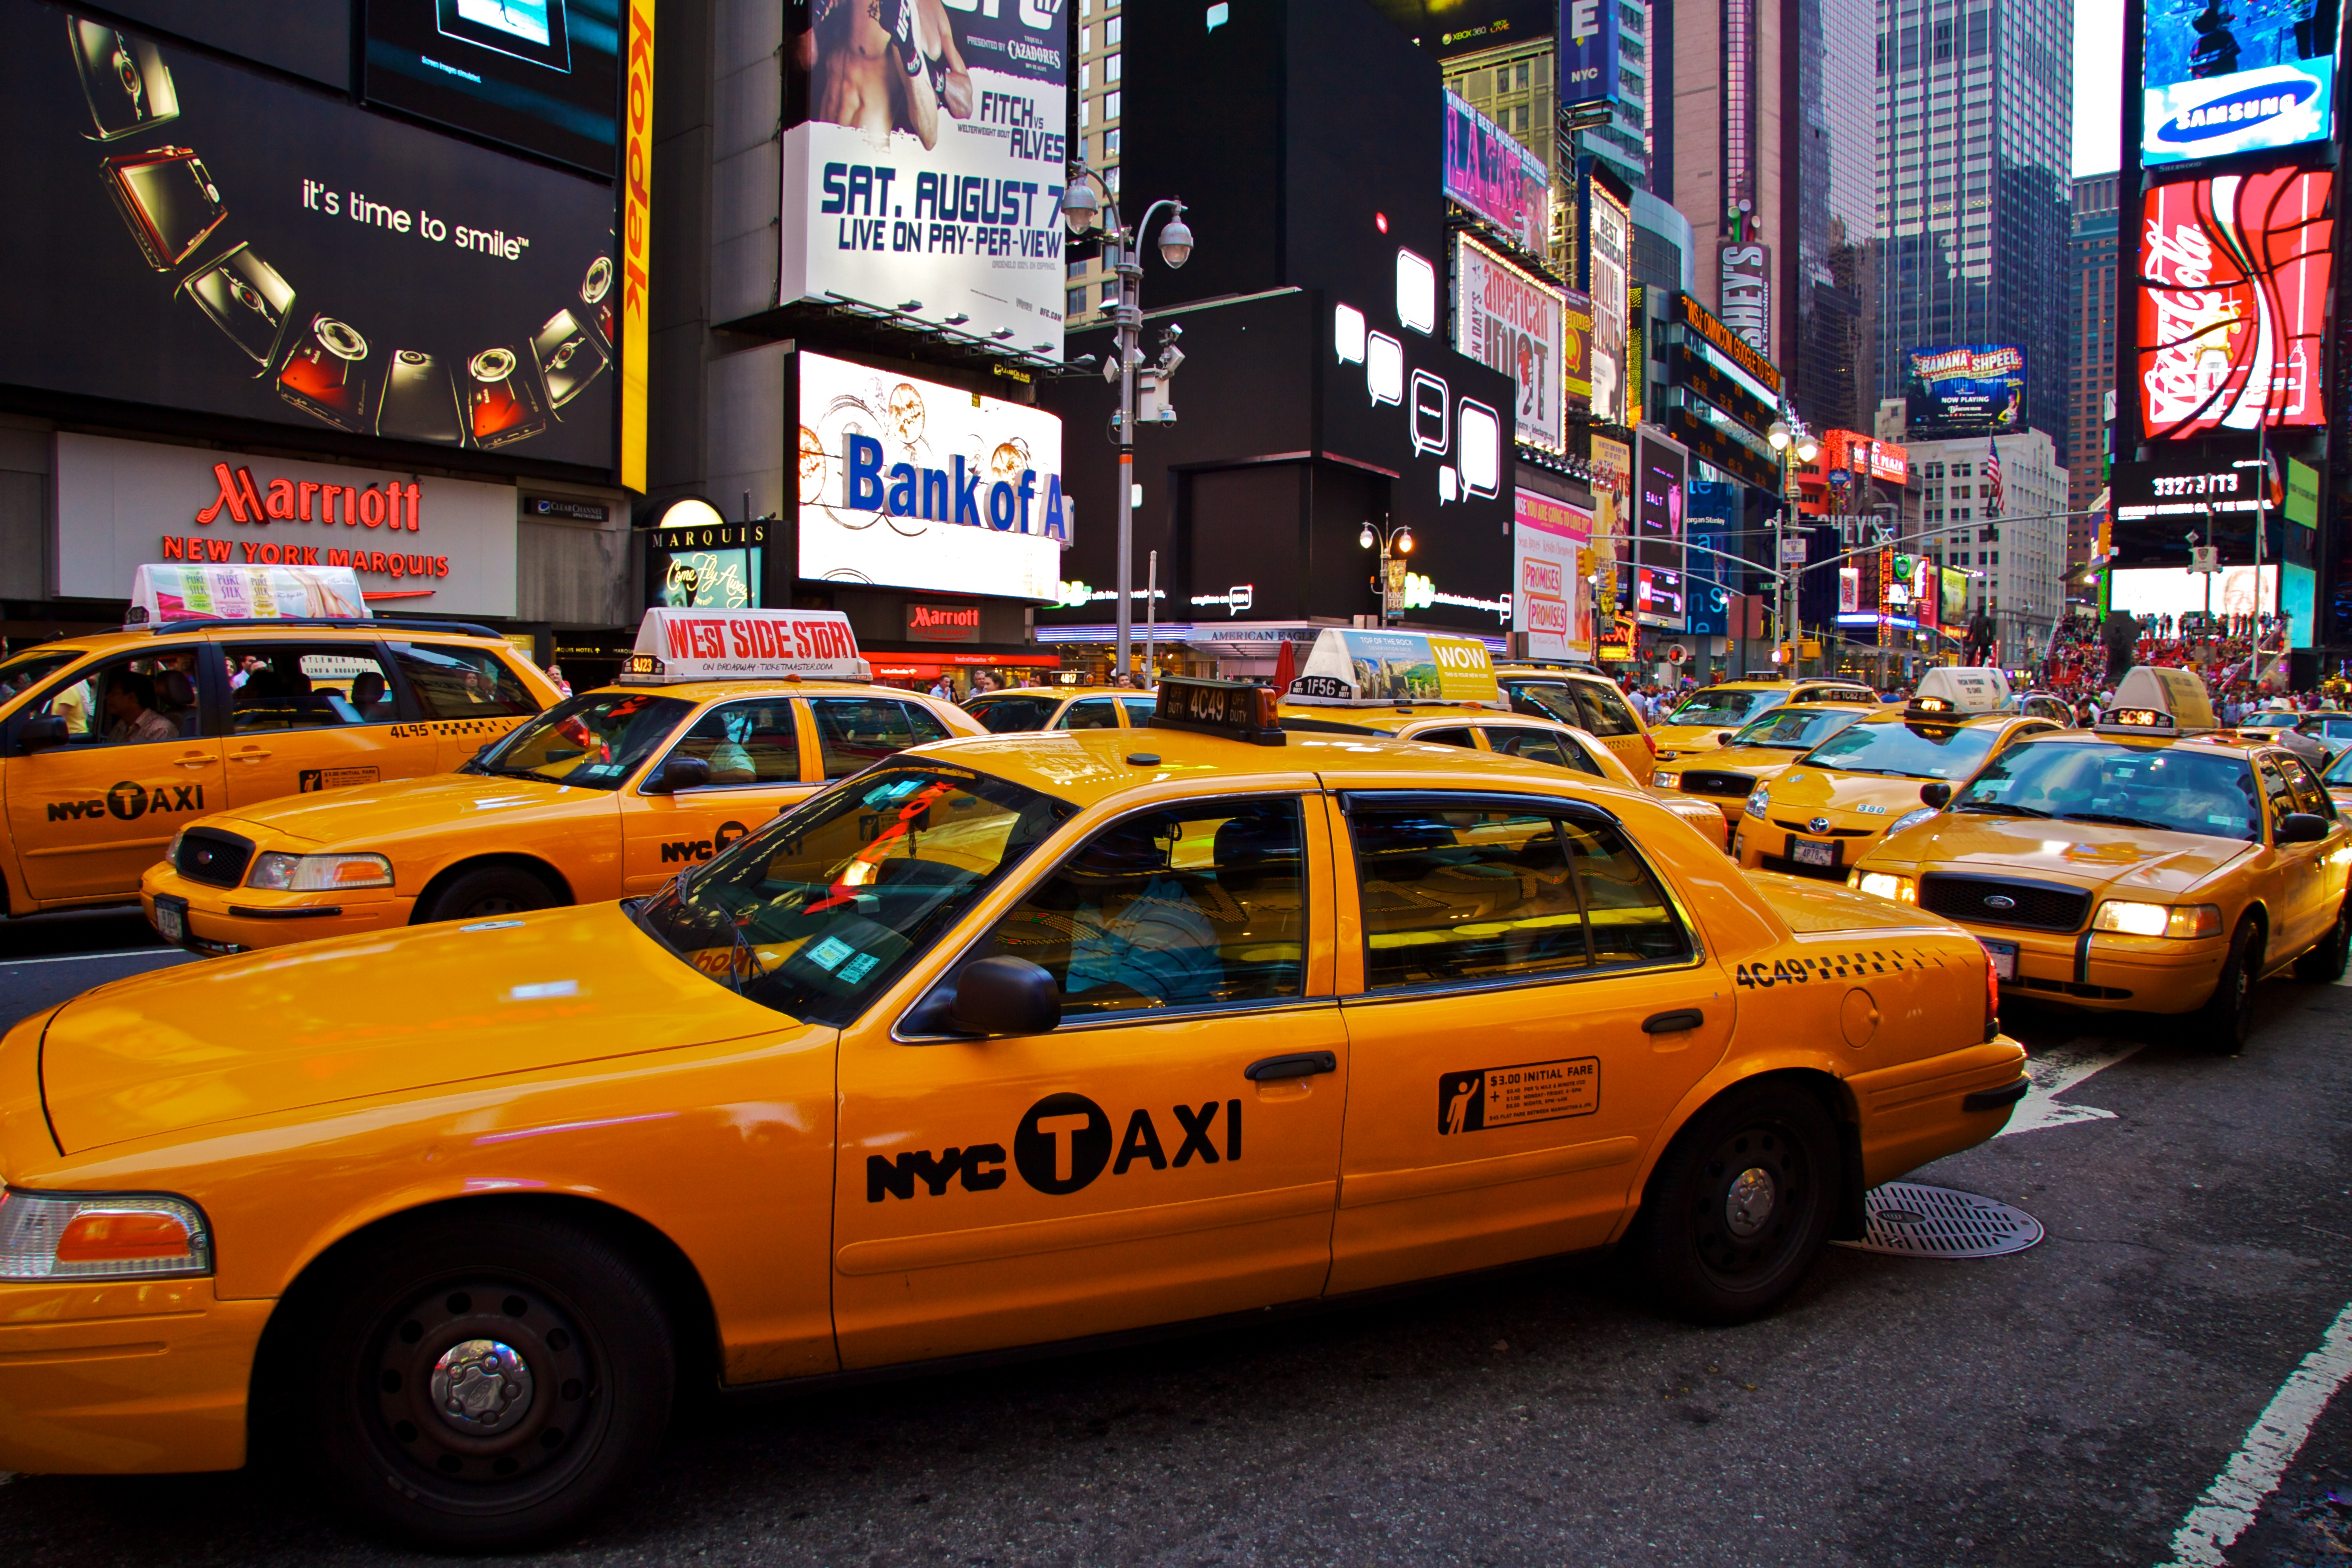 NYC Taxic Accidents Lawyer | Queens Taxi Cab Accident Attorney